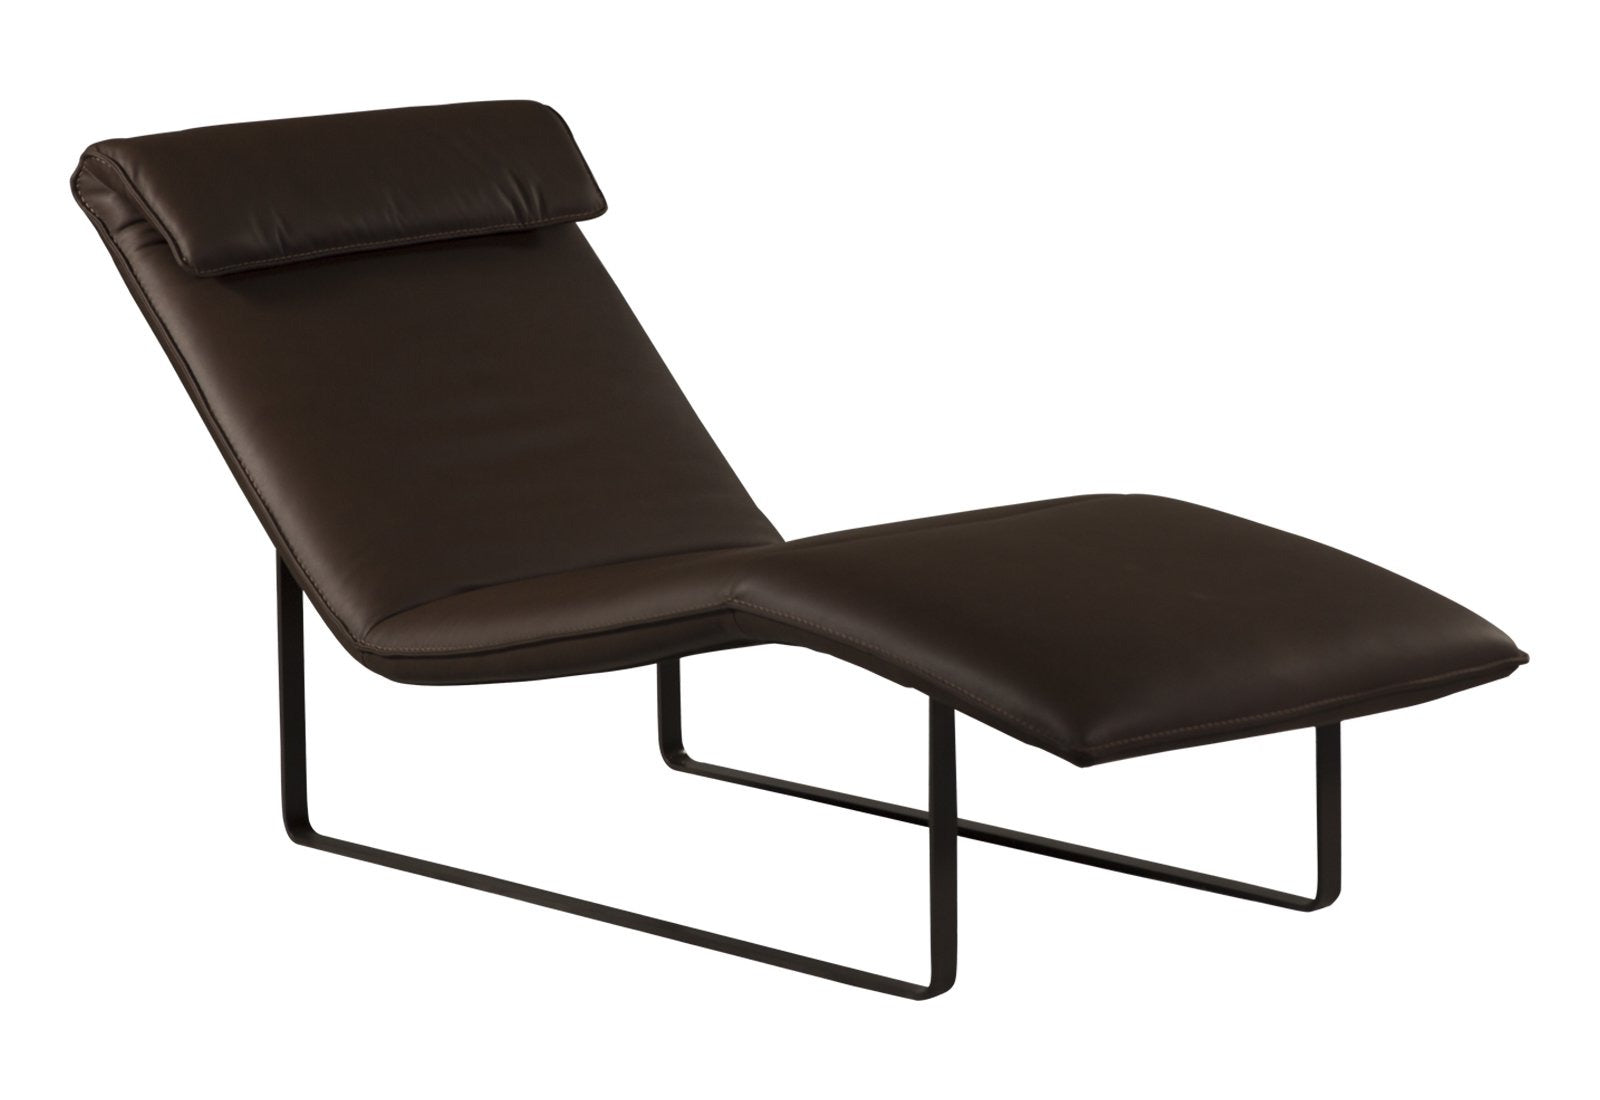 Cotto Chaise Lounge